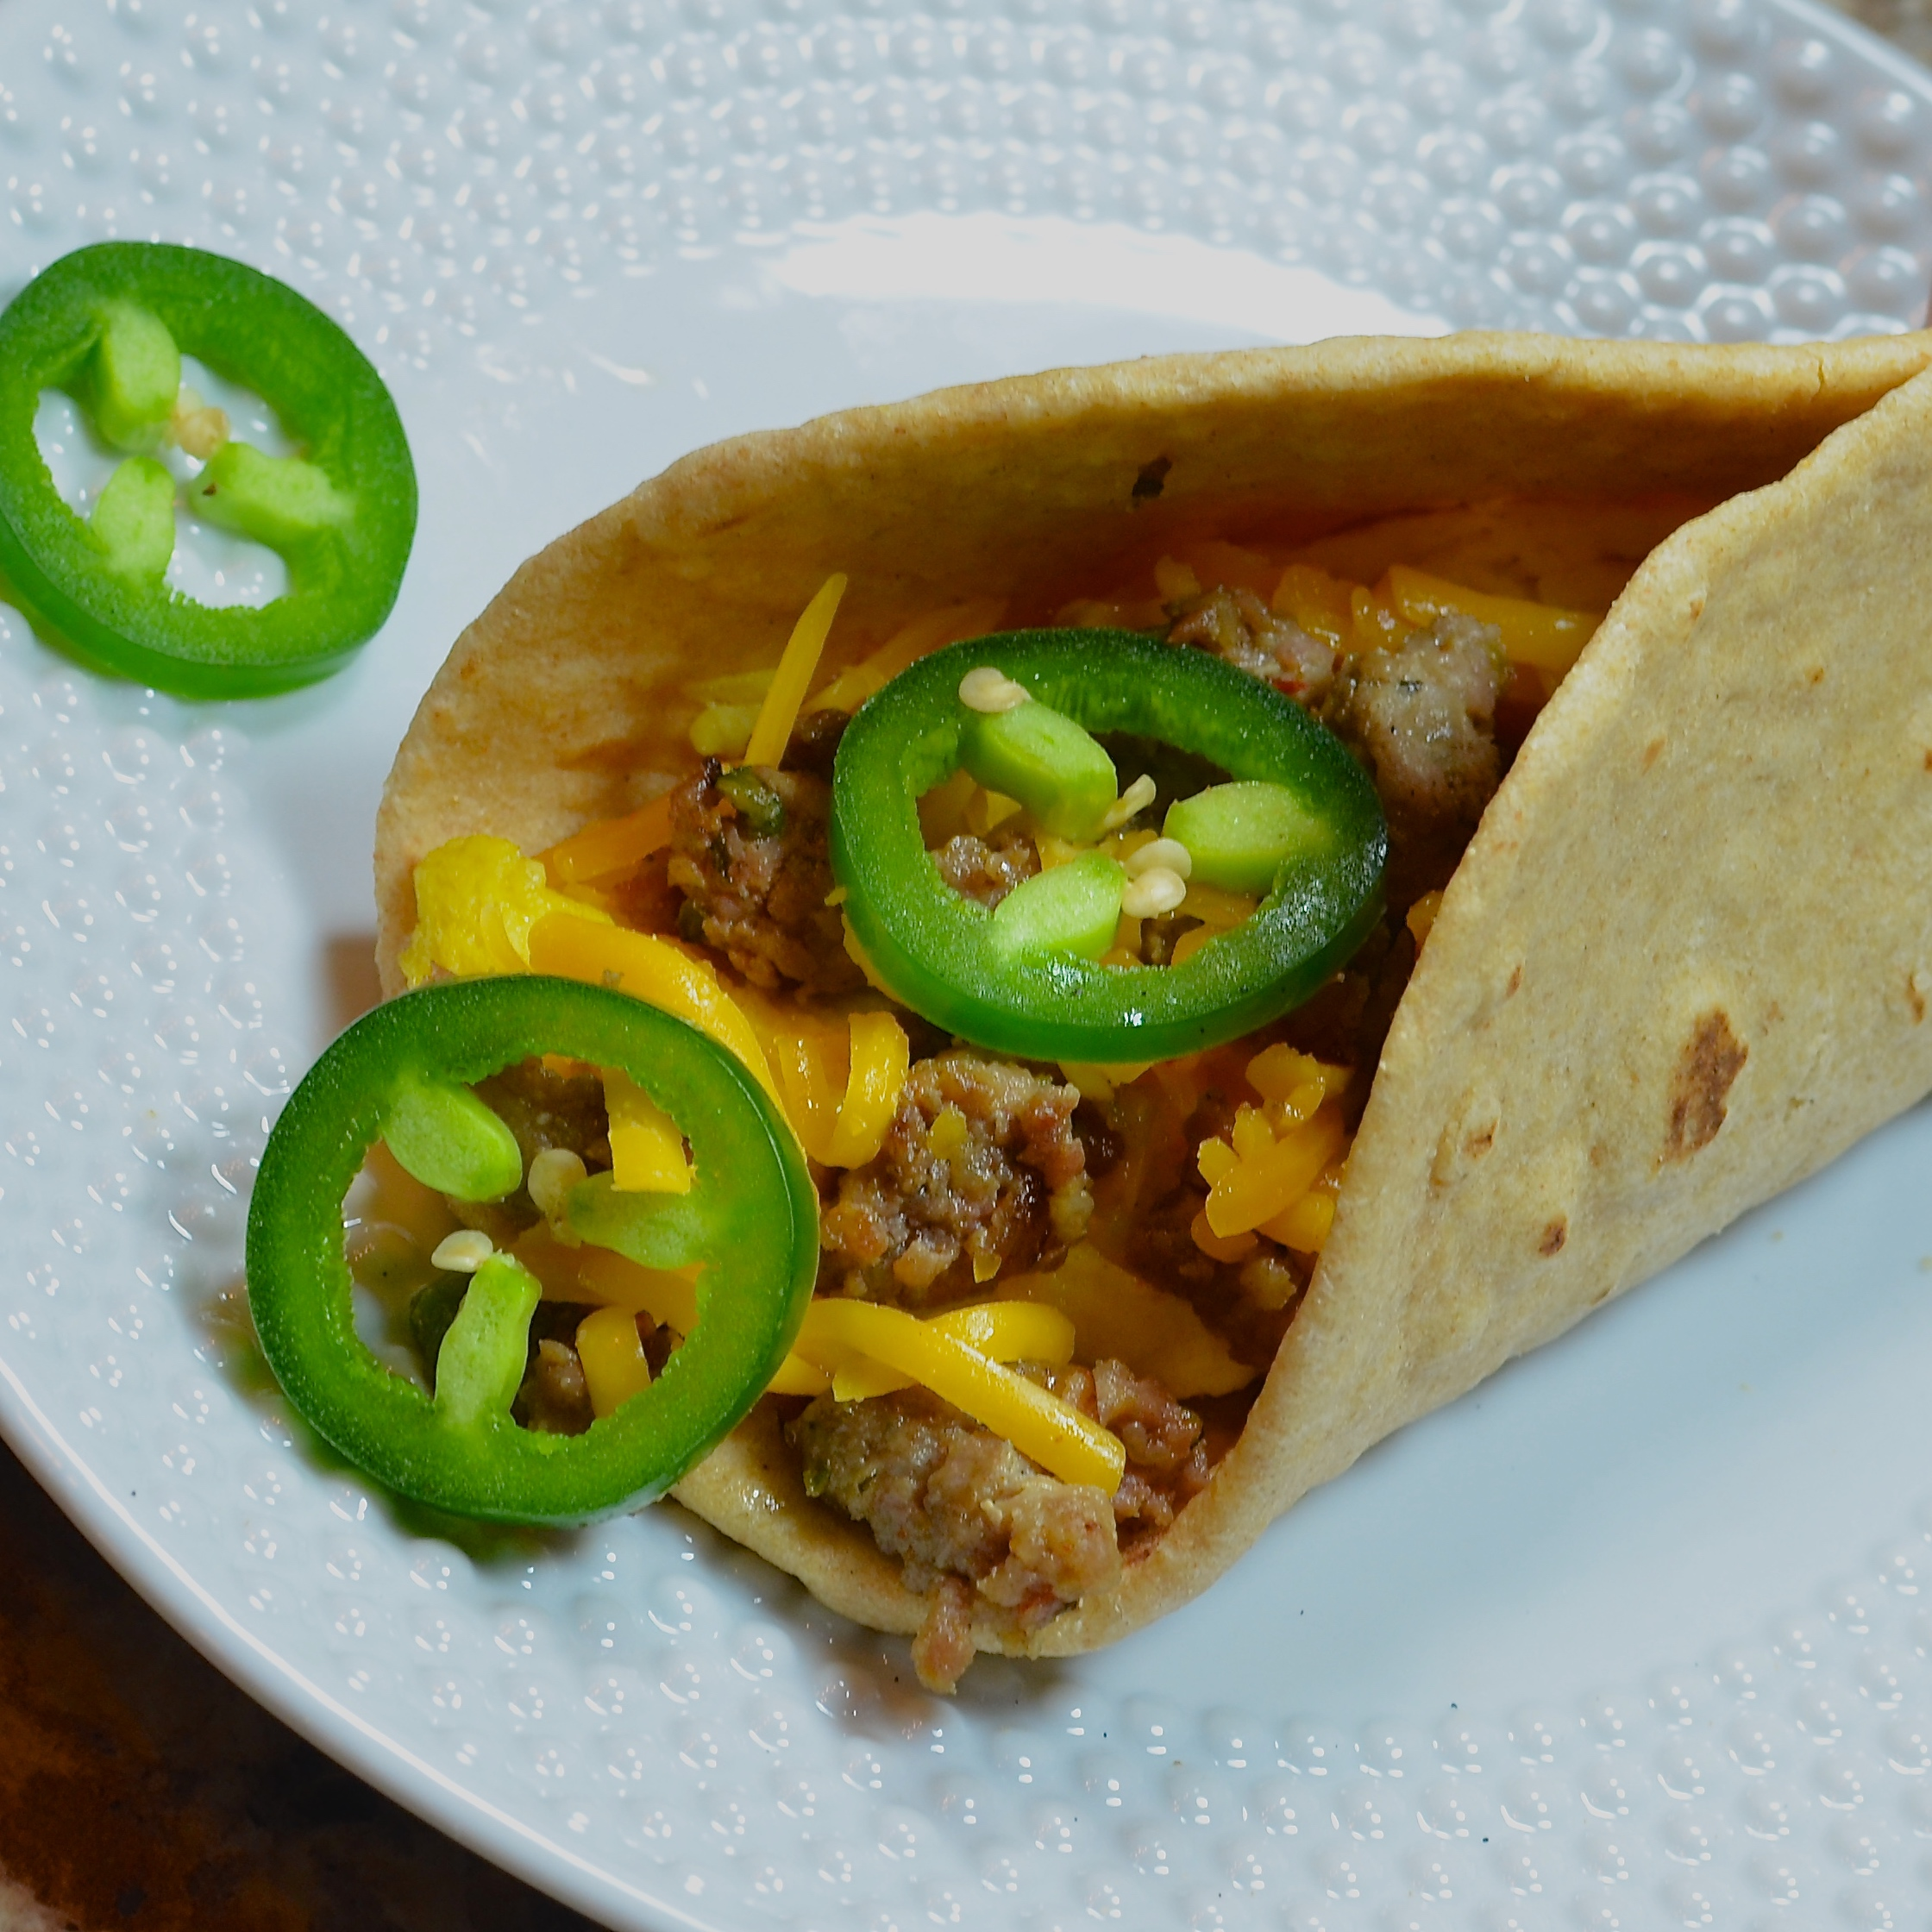 Turkey sausage is fried up with onion and spices, topped with cheese, and served in warm corn or flour tortillas. Home cook Lela served hers with eggs and said it was tasty.